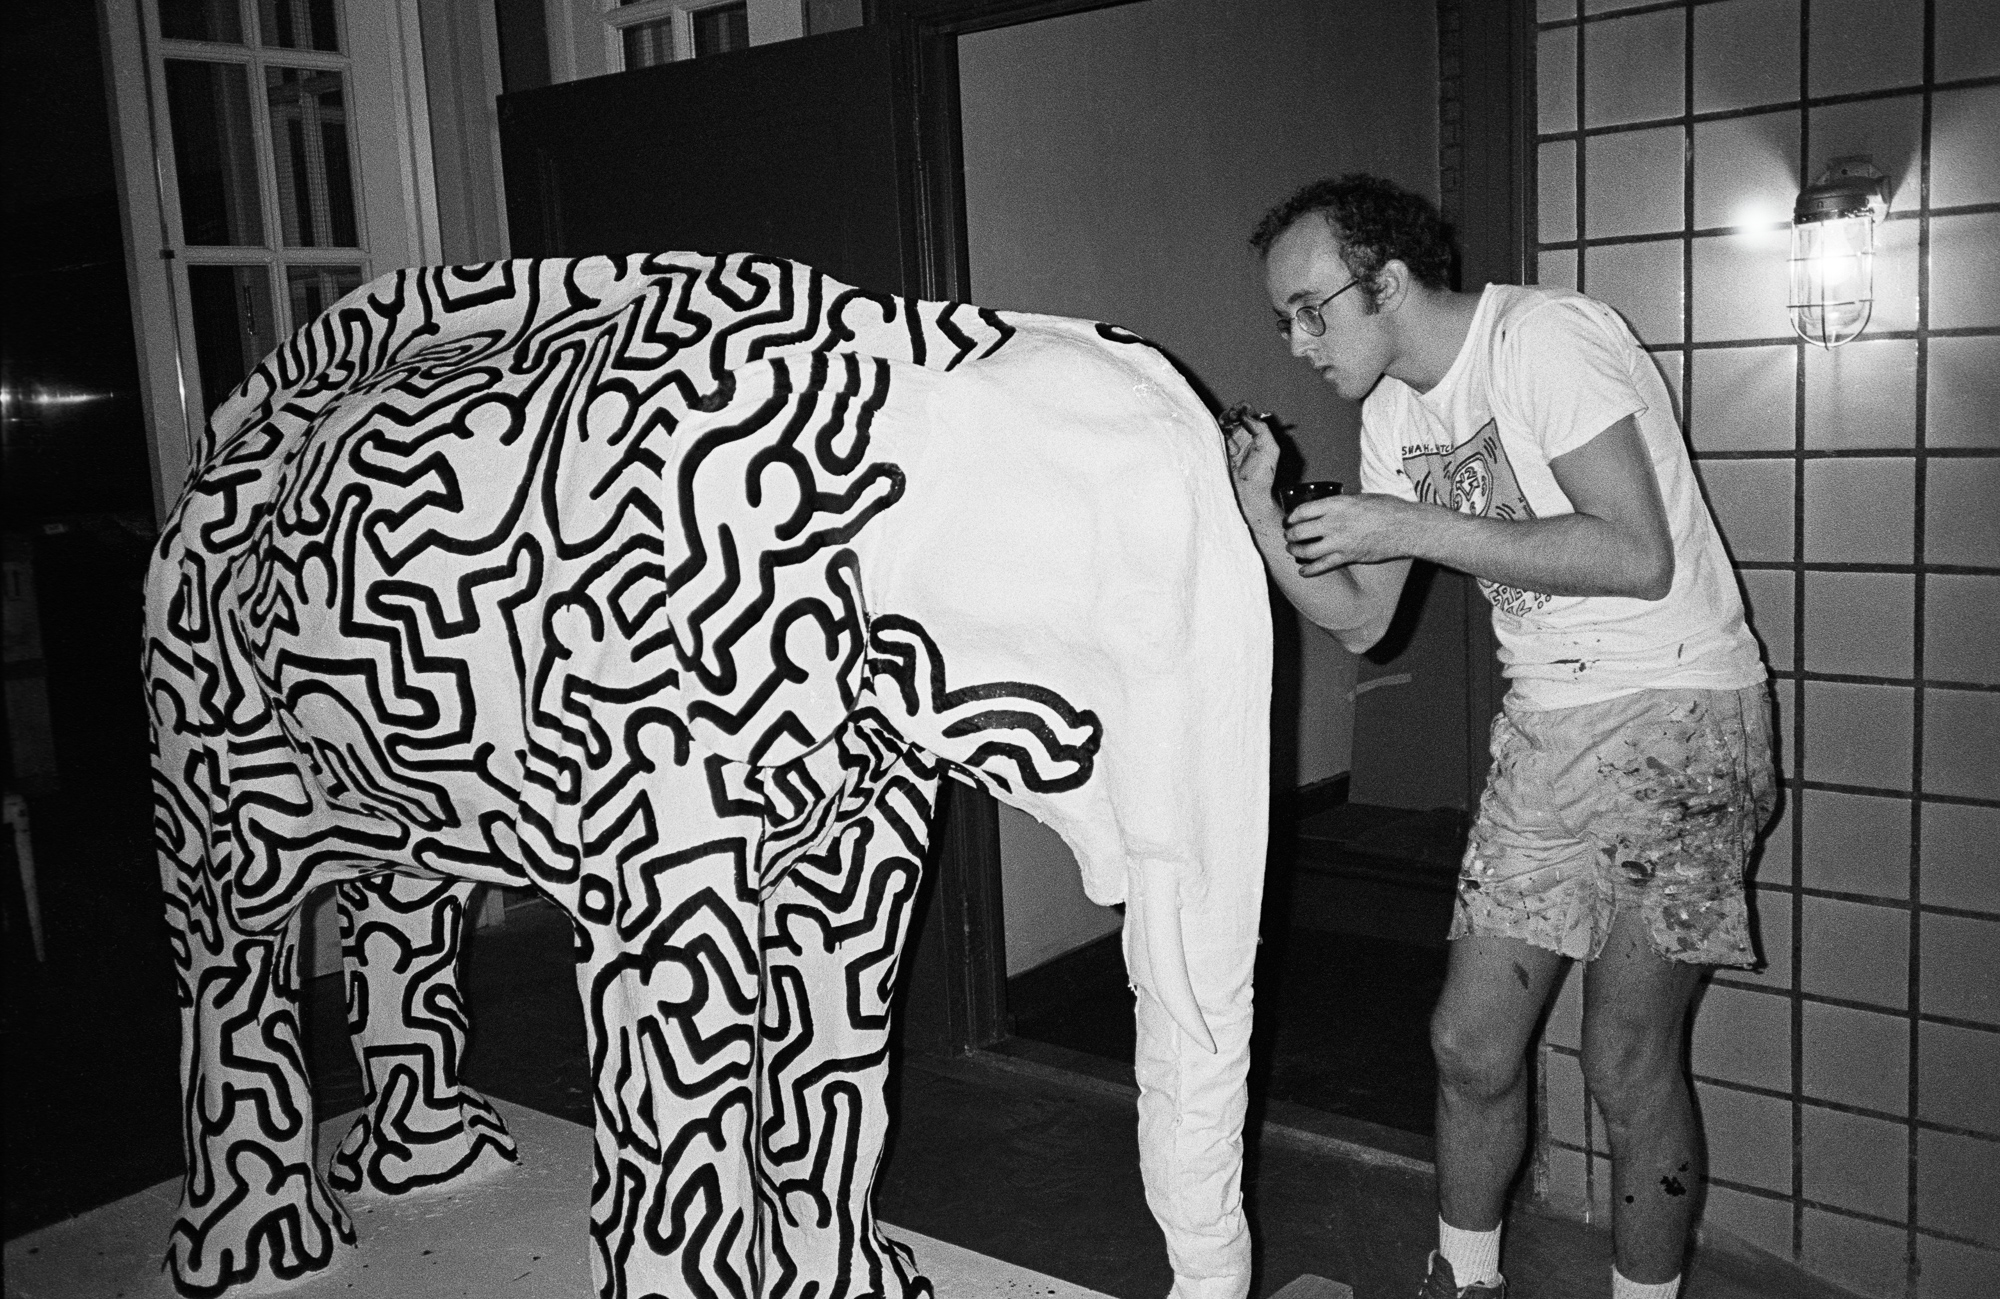 Keith Haring paints Andy Warhol's paper-mâché elephant. (1989)